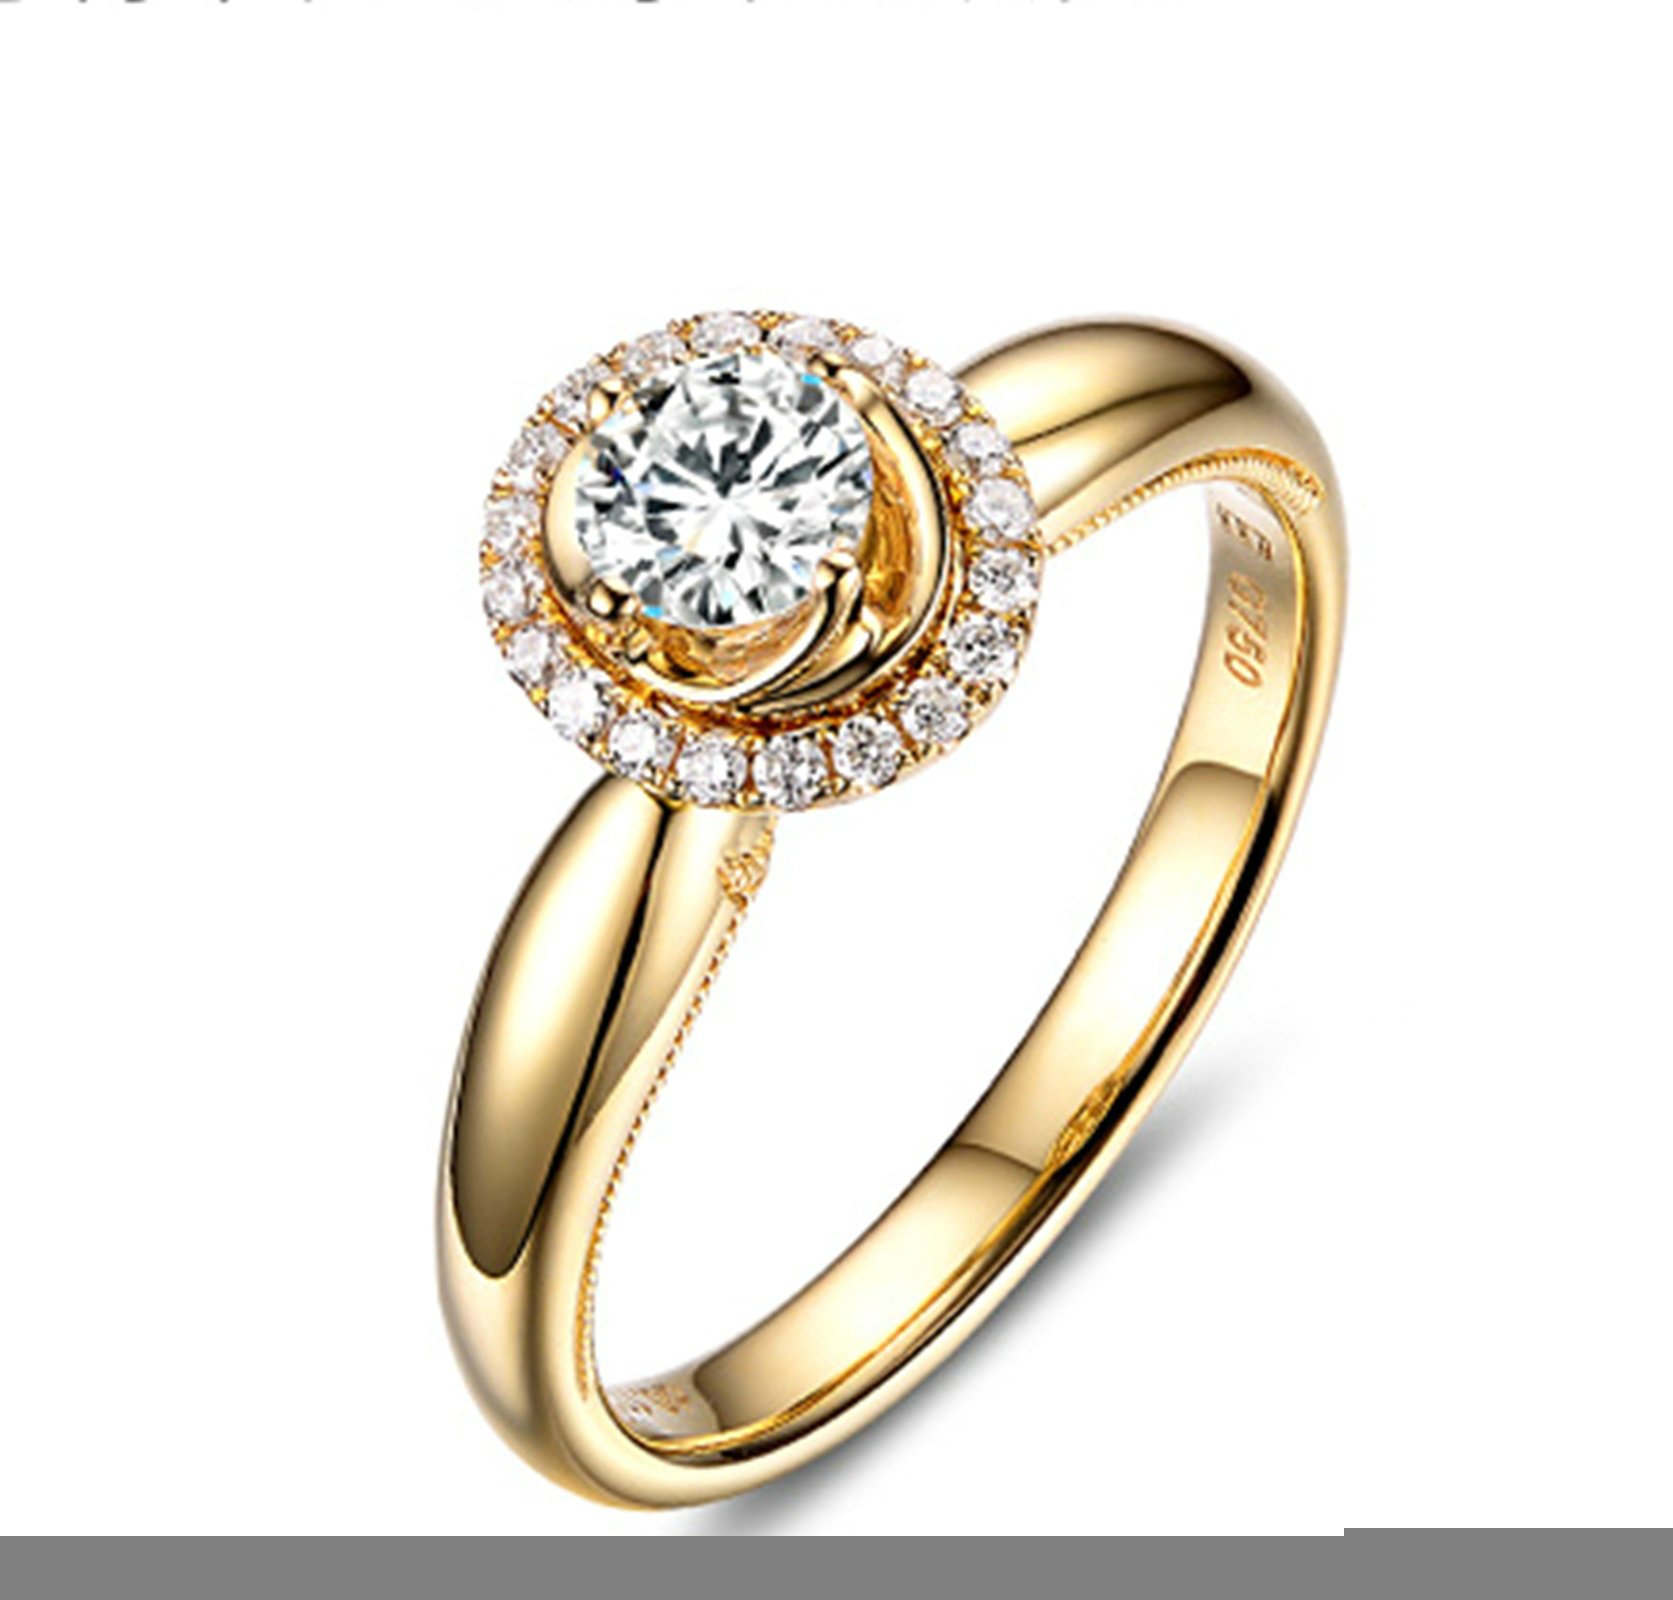 Gnzoe Rose Gold Women Wedding Rings Solitaire Promise Rings Crown Flowers Yellow with White Blue 1ct Diamond Size 7 by Gnzoe